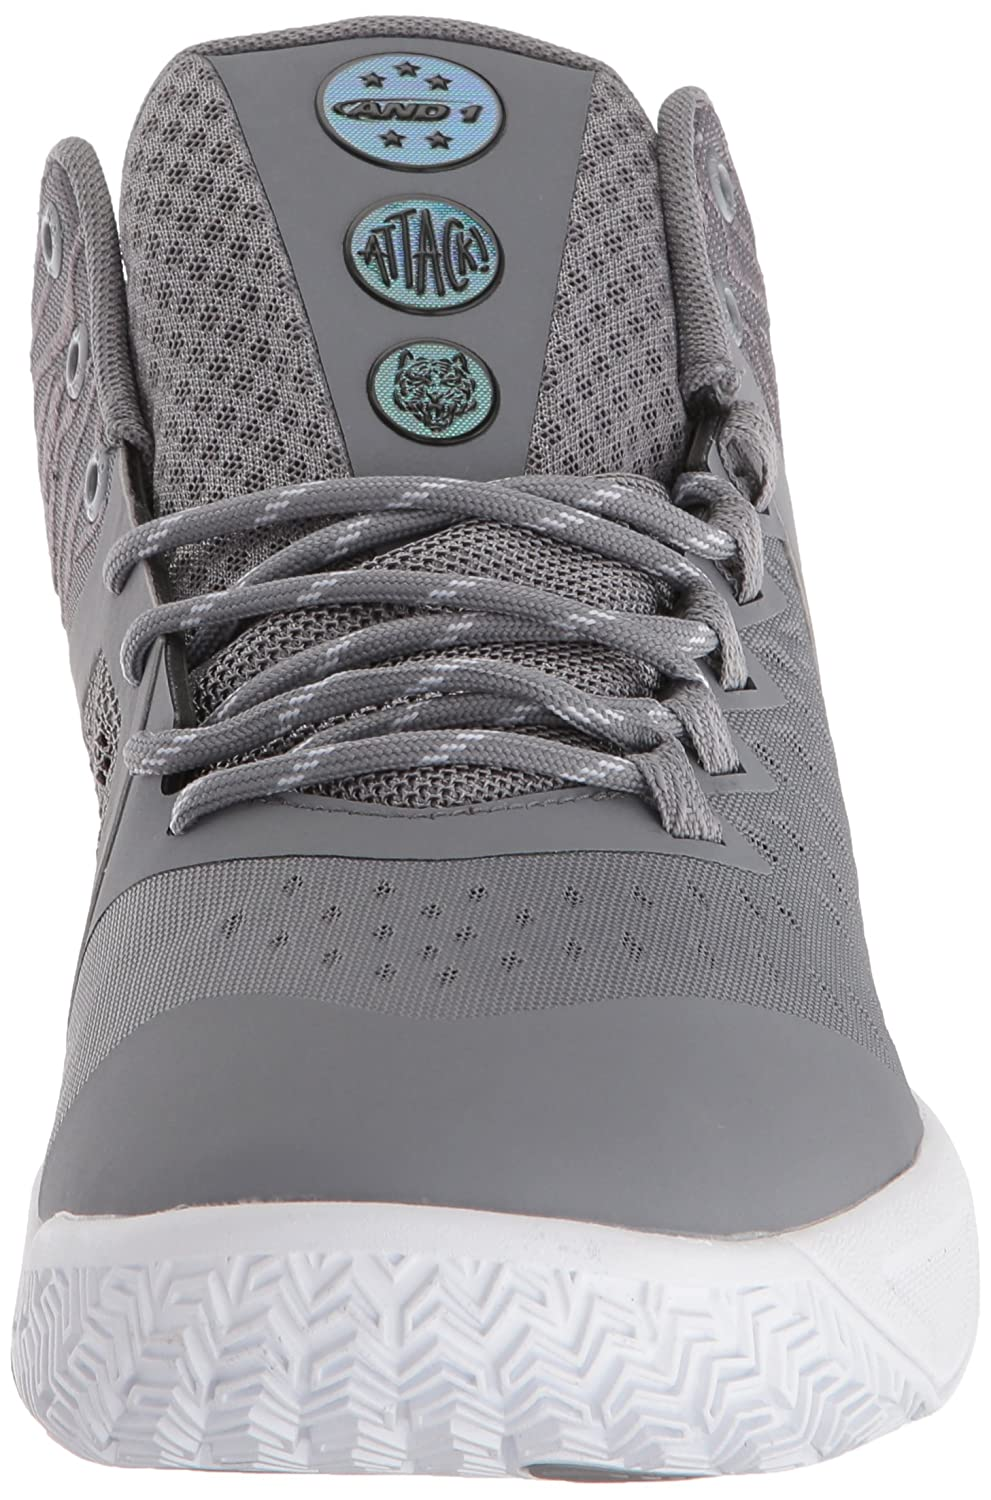 AND 1 Mens Attack Mid Basketball Shoe